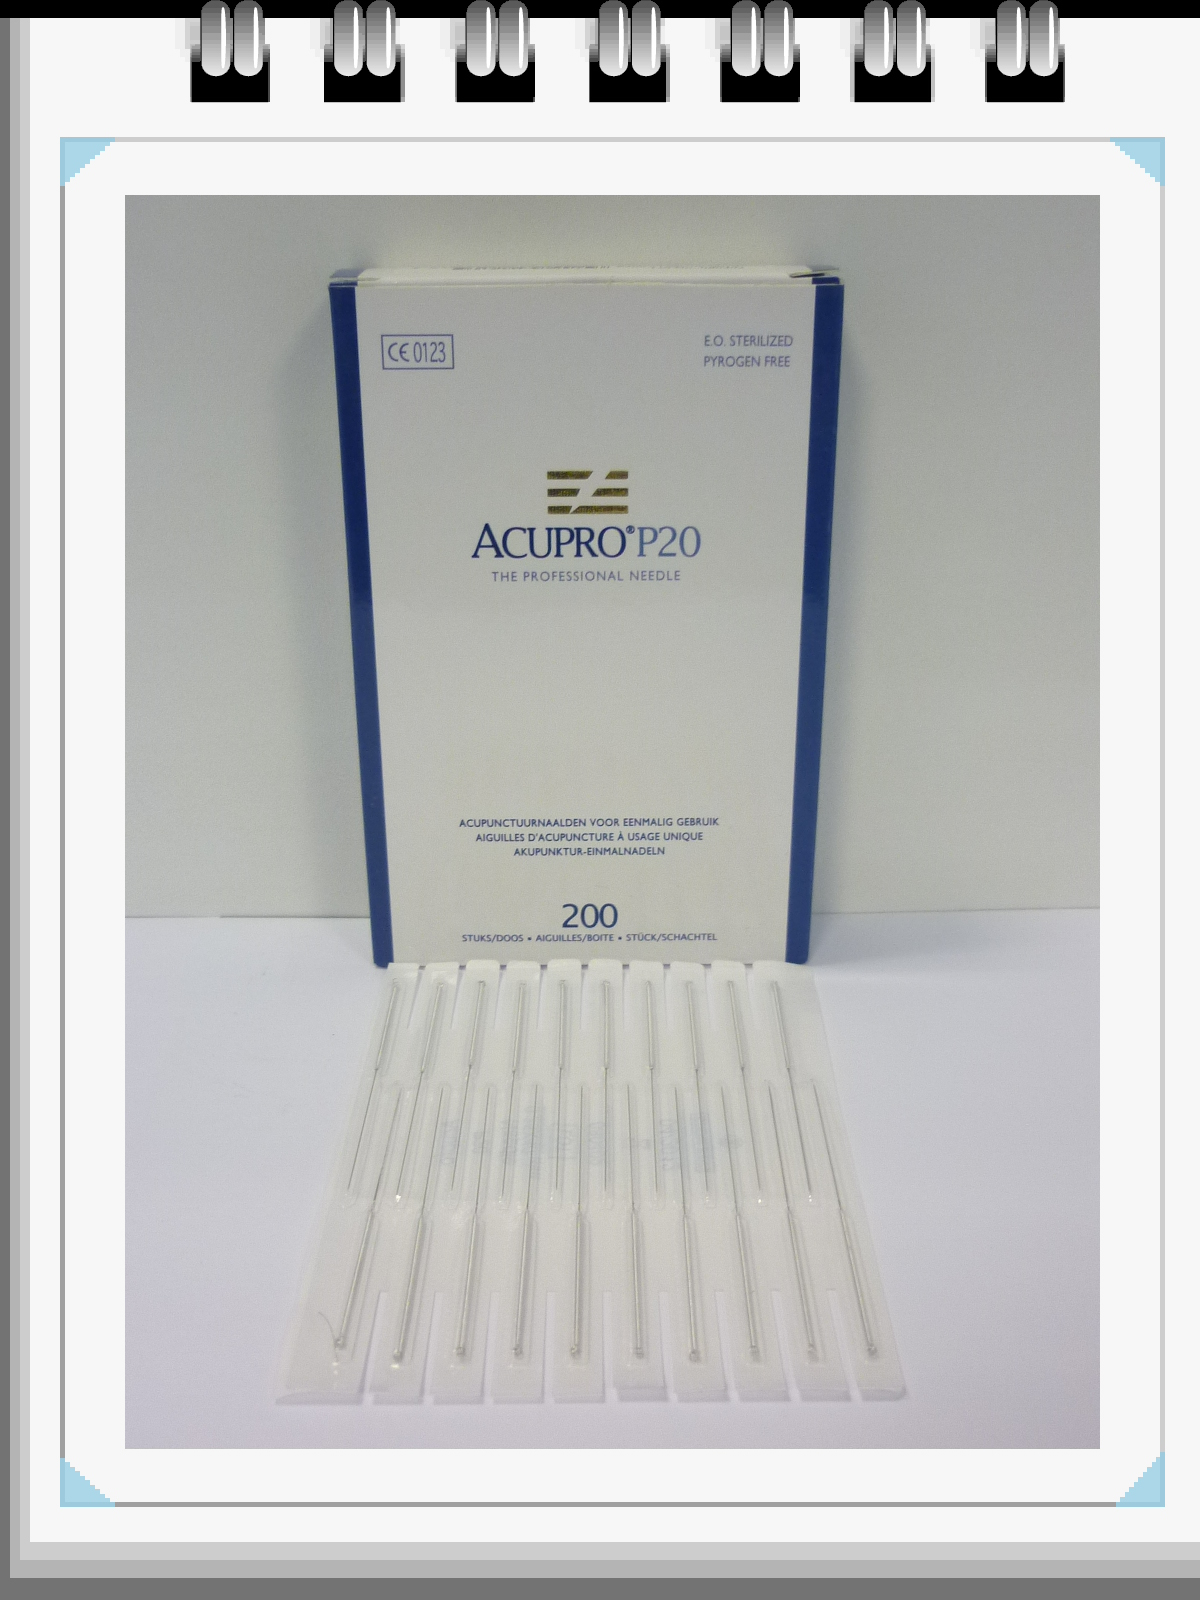 All Products - Acupunctuurnaalden: 0,20 x 40mm, p--200